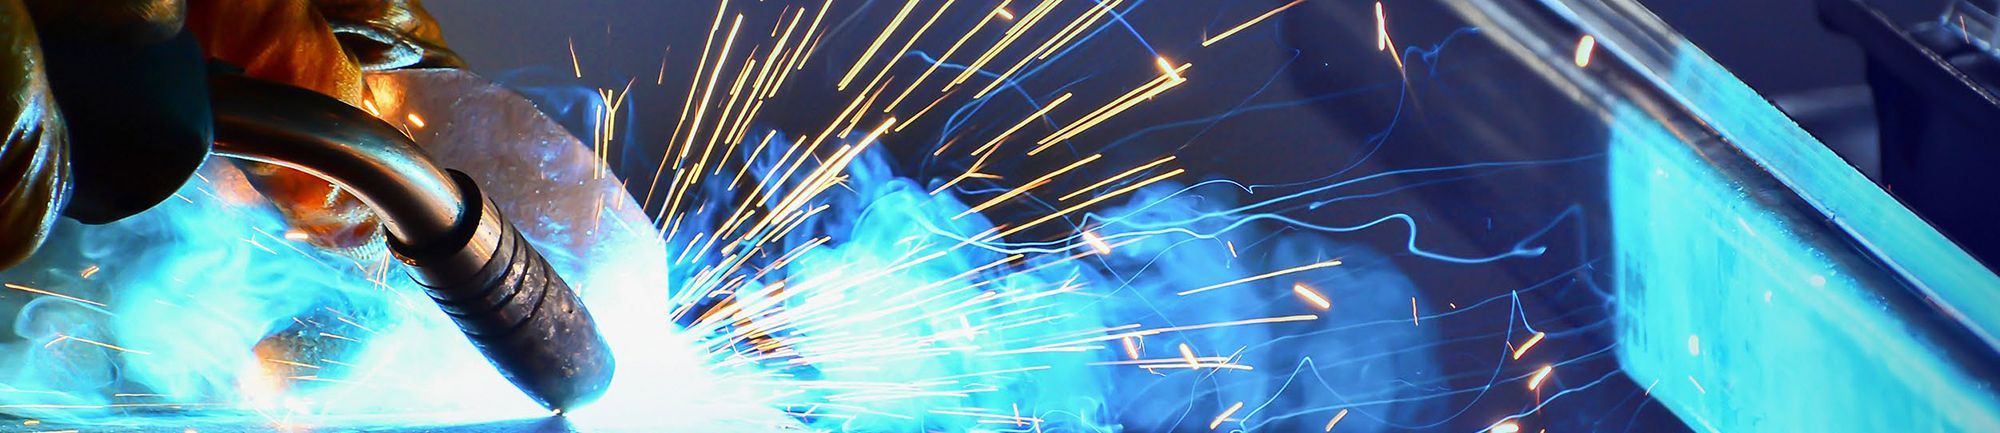 Welding giving off sparks